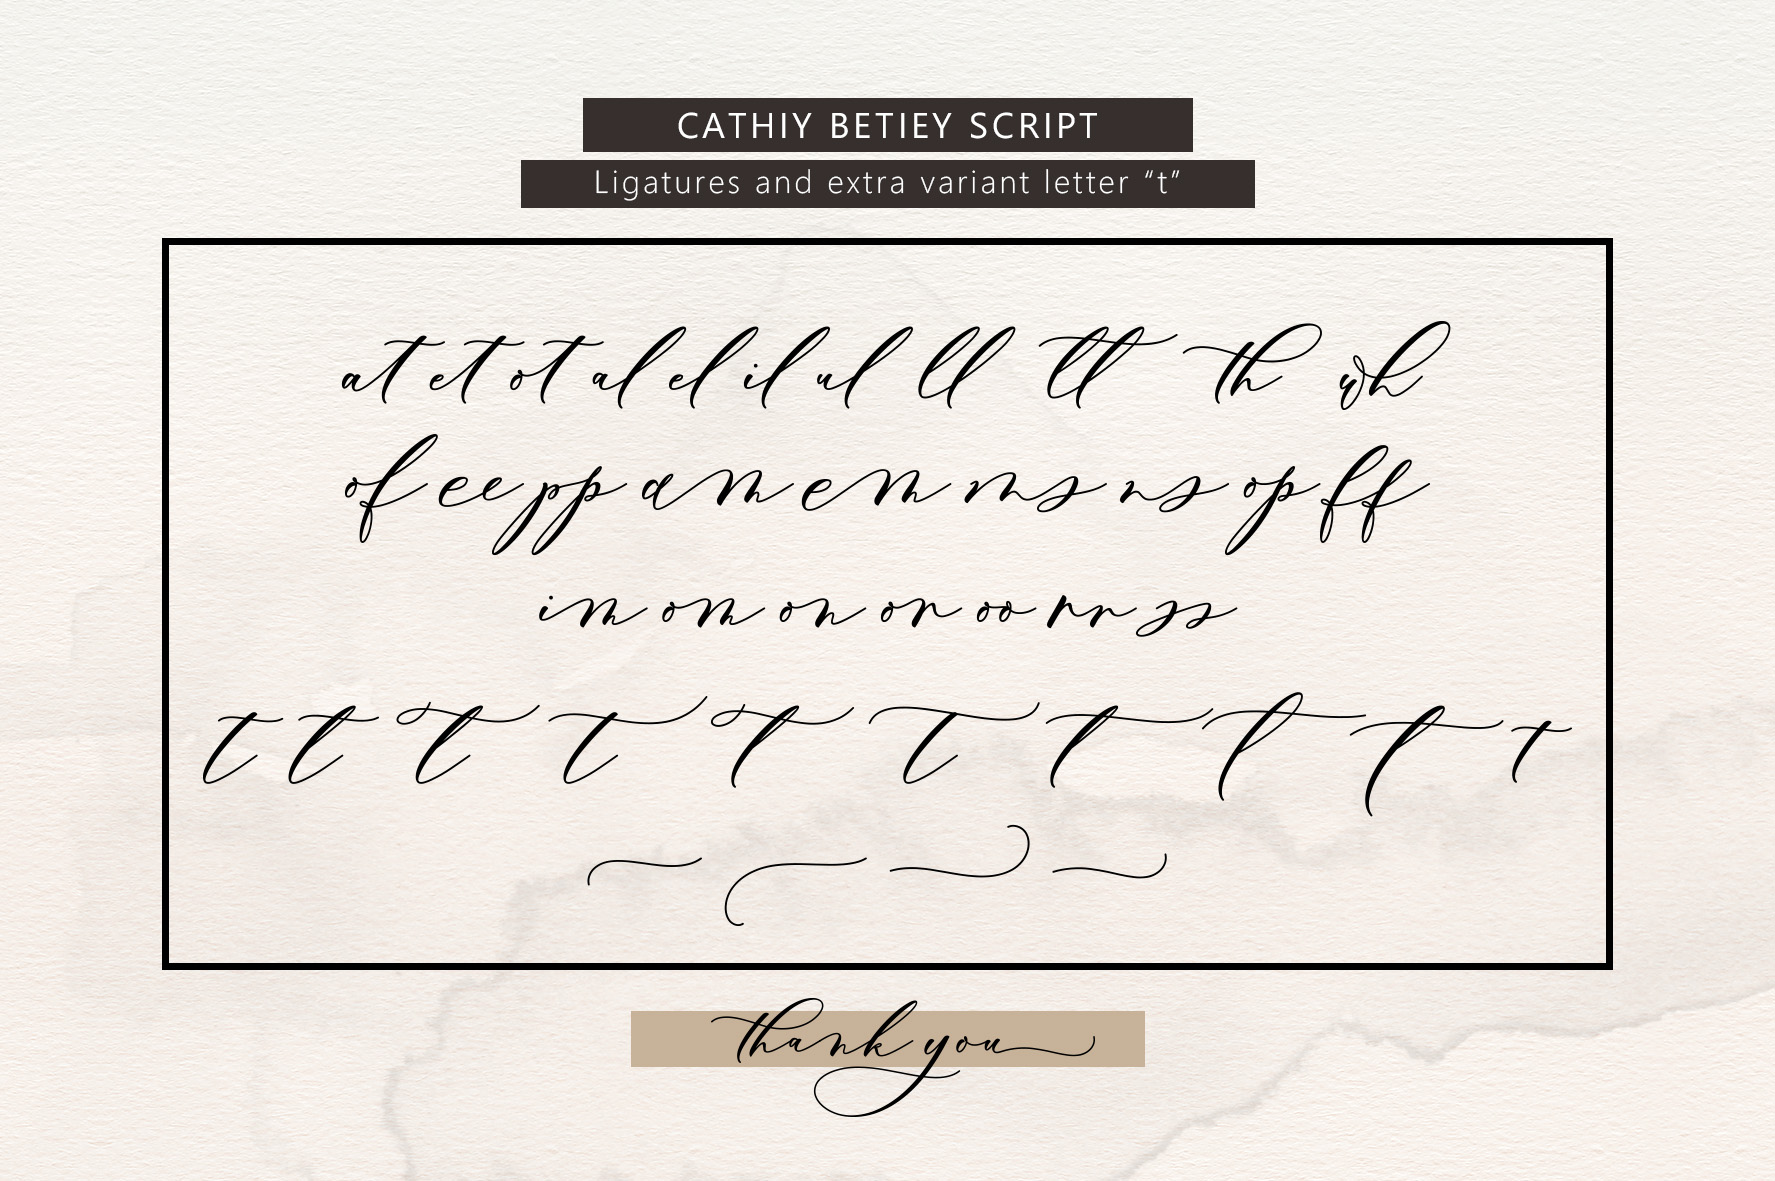 Cathiy Betiey Script example image 9